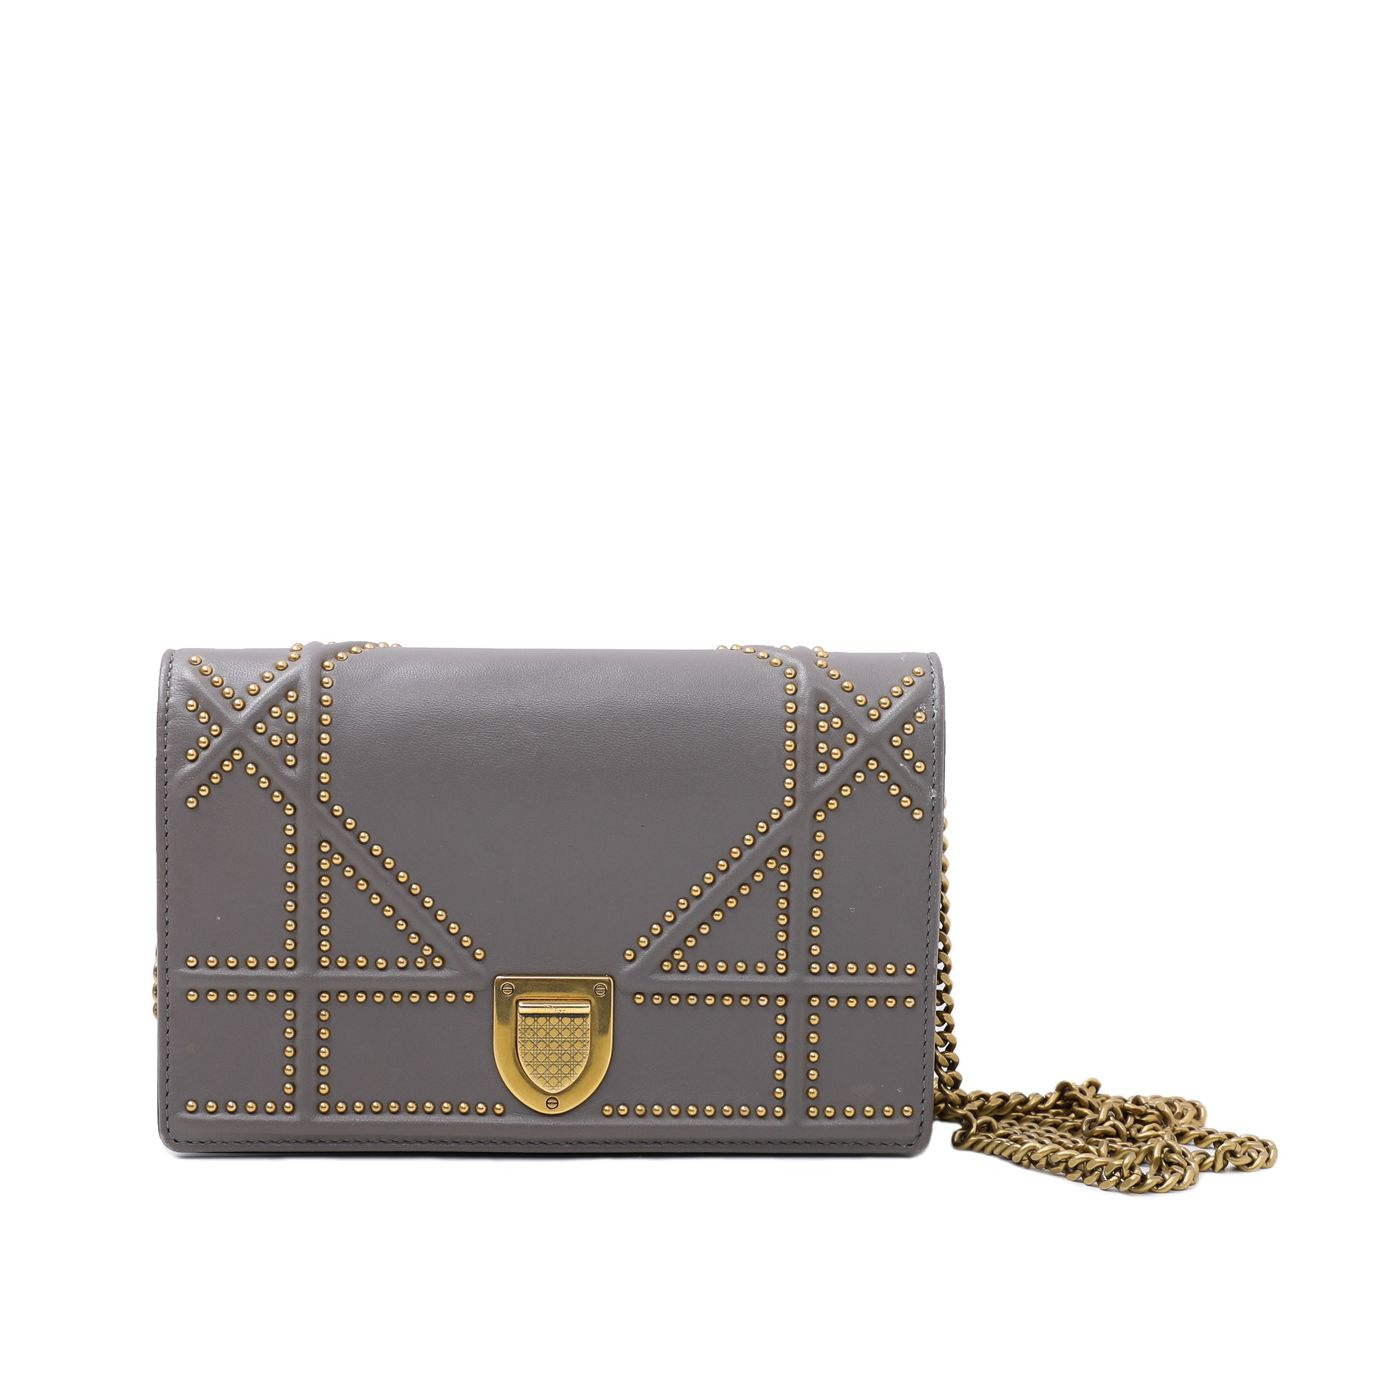 Christian Dior Iron Gray Diorama Studded WOC Pouch